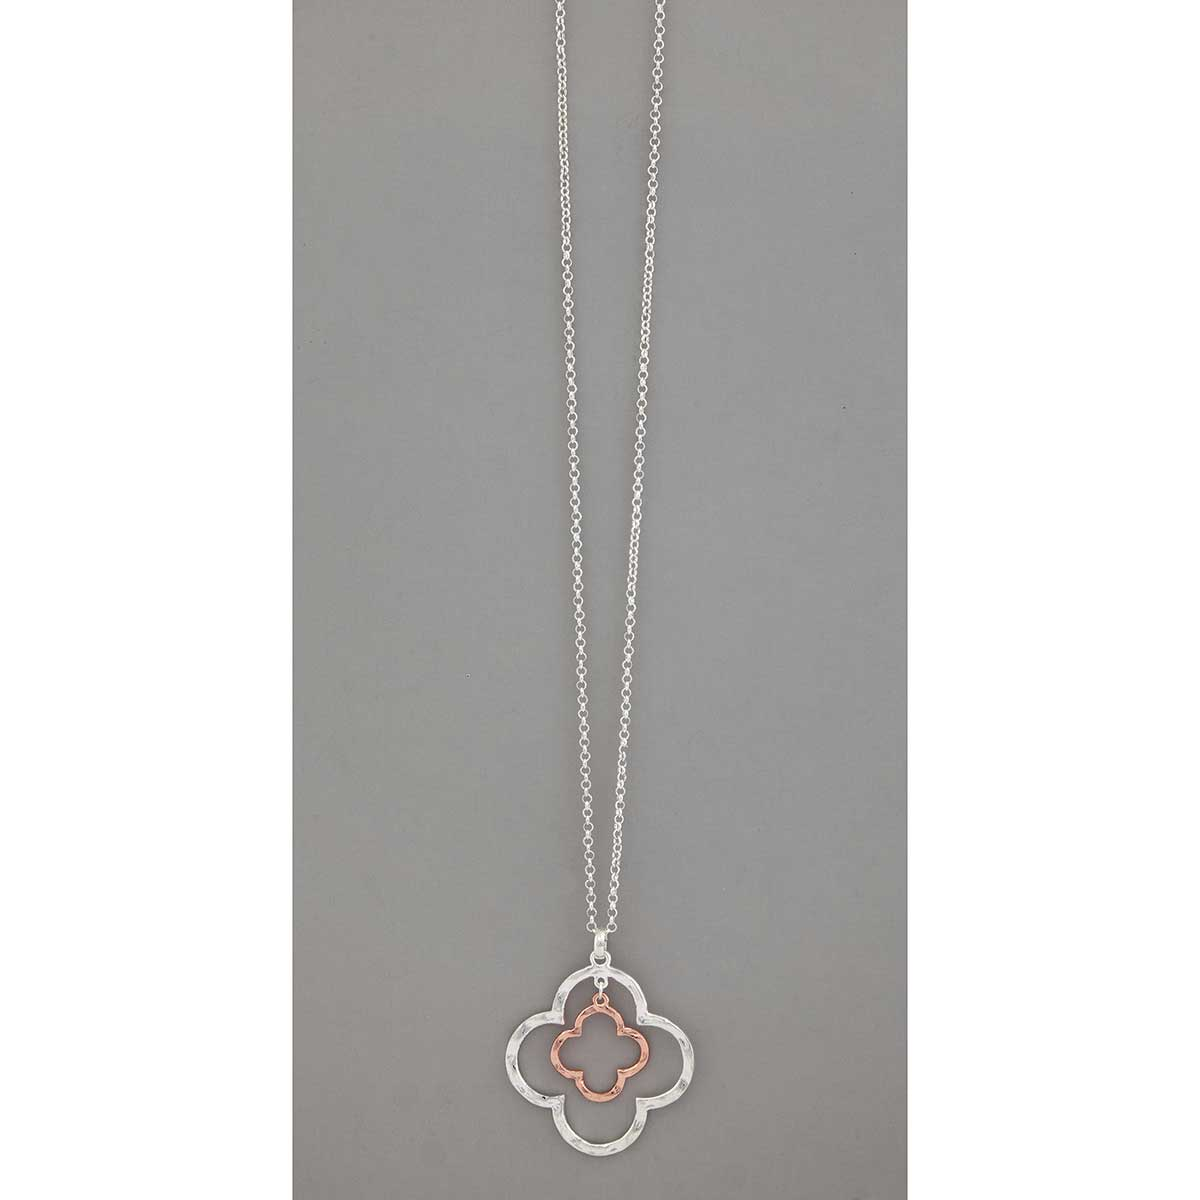 "Silver/Rose Gold 2.25""x2.5"" Celtic Pendant on Chain Necklace 32"""